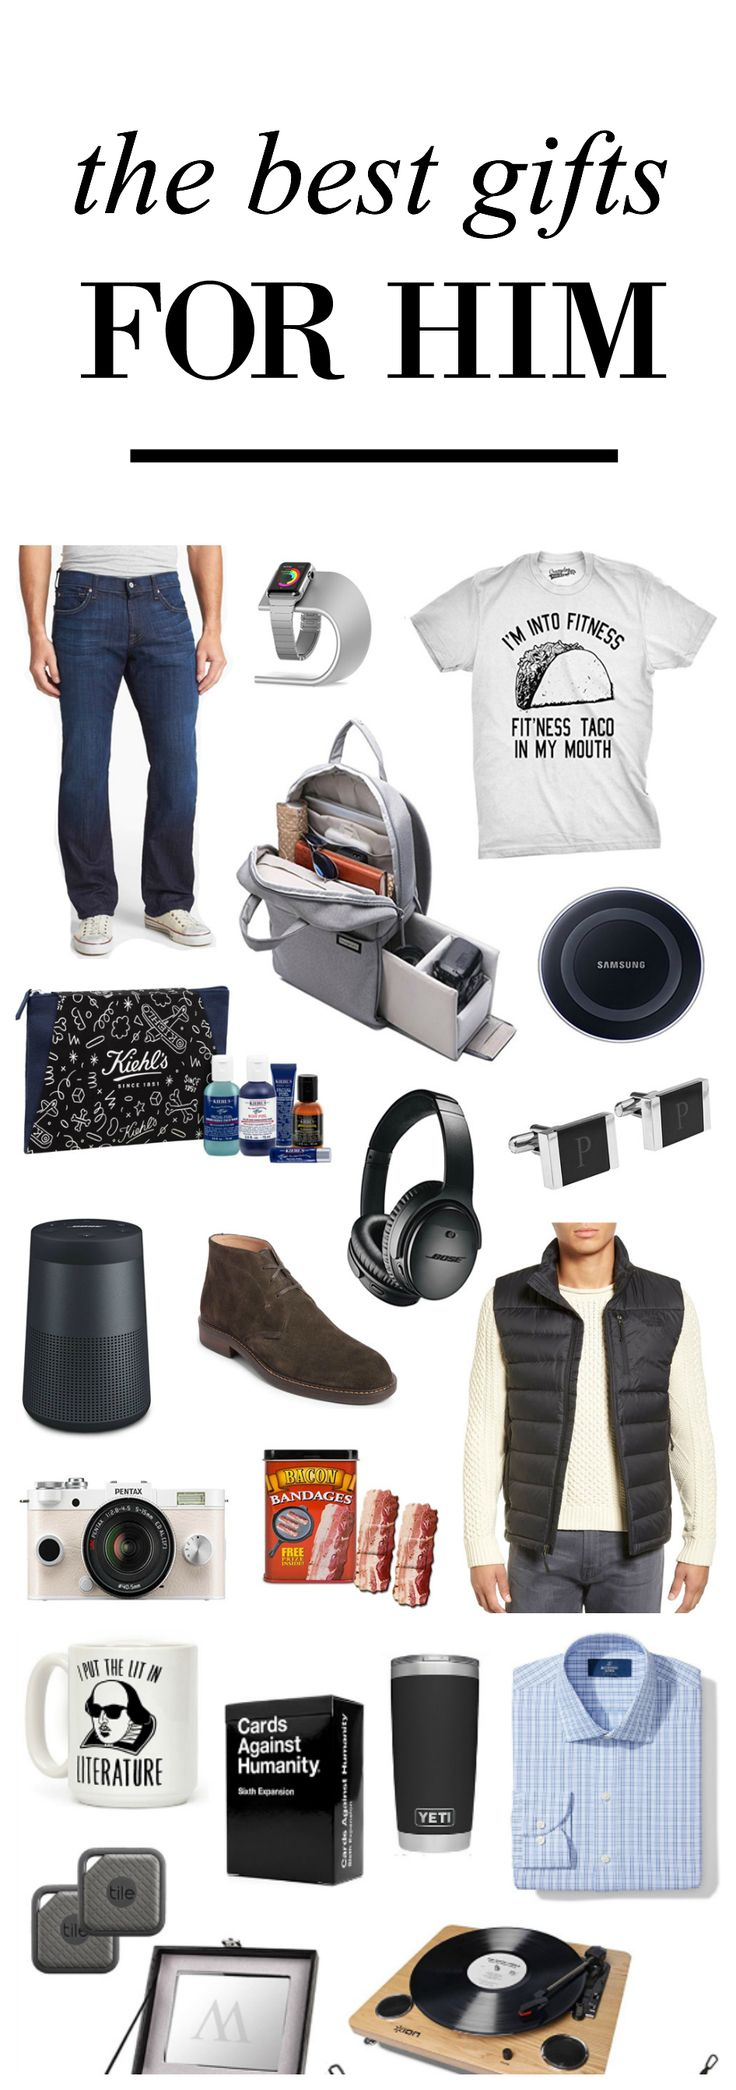 So many great finds | Blogger Mash Elle creates the perfect gift guide for all the men in your life! Perfect for your dad, brother, boyfriend, husband, fiance, cousin, neighbor, coworker, grandparent, uncle, best friend, teacher and more! Includes graphic t-shirts, electronics, games, apparel, fun and unique gifts! Personalized gifts. #giftsforhim #giftguideforhim #christmasgiftguide #affordablegiftsforhim #sotckingstuffers